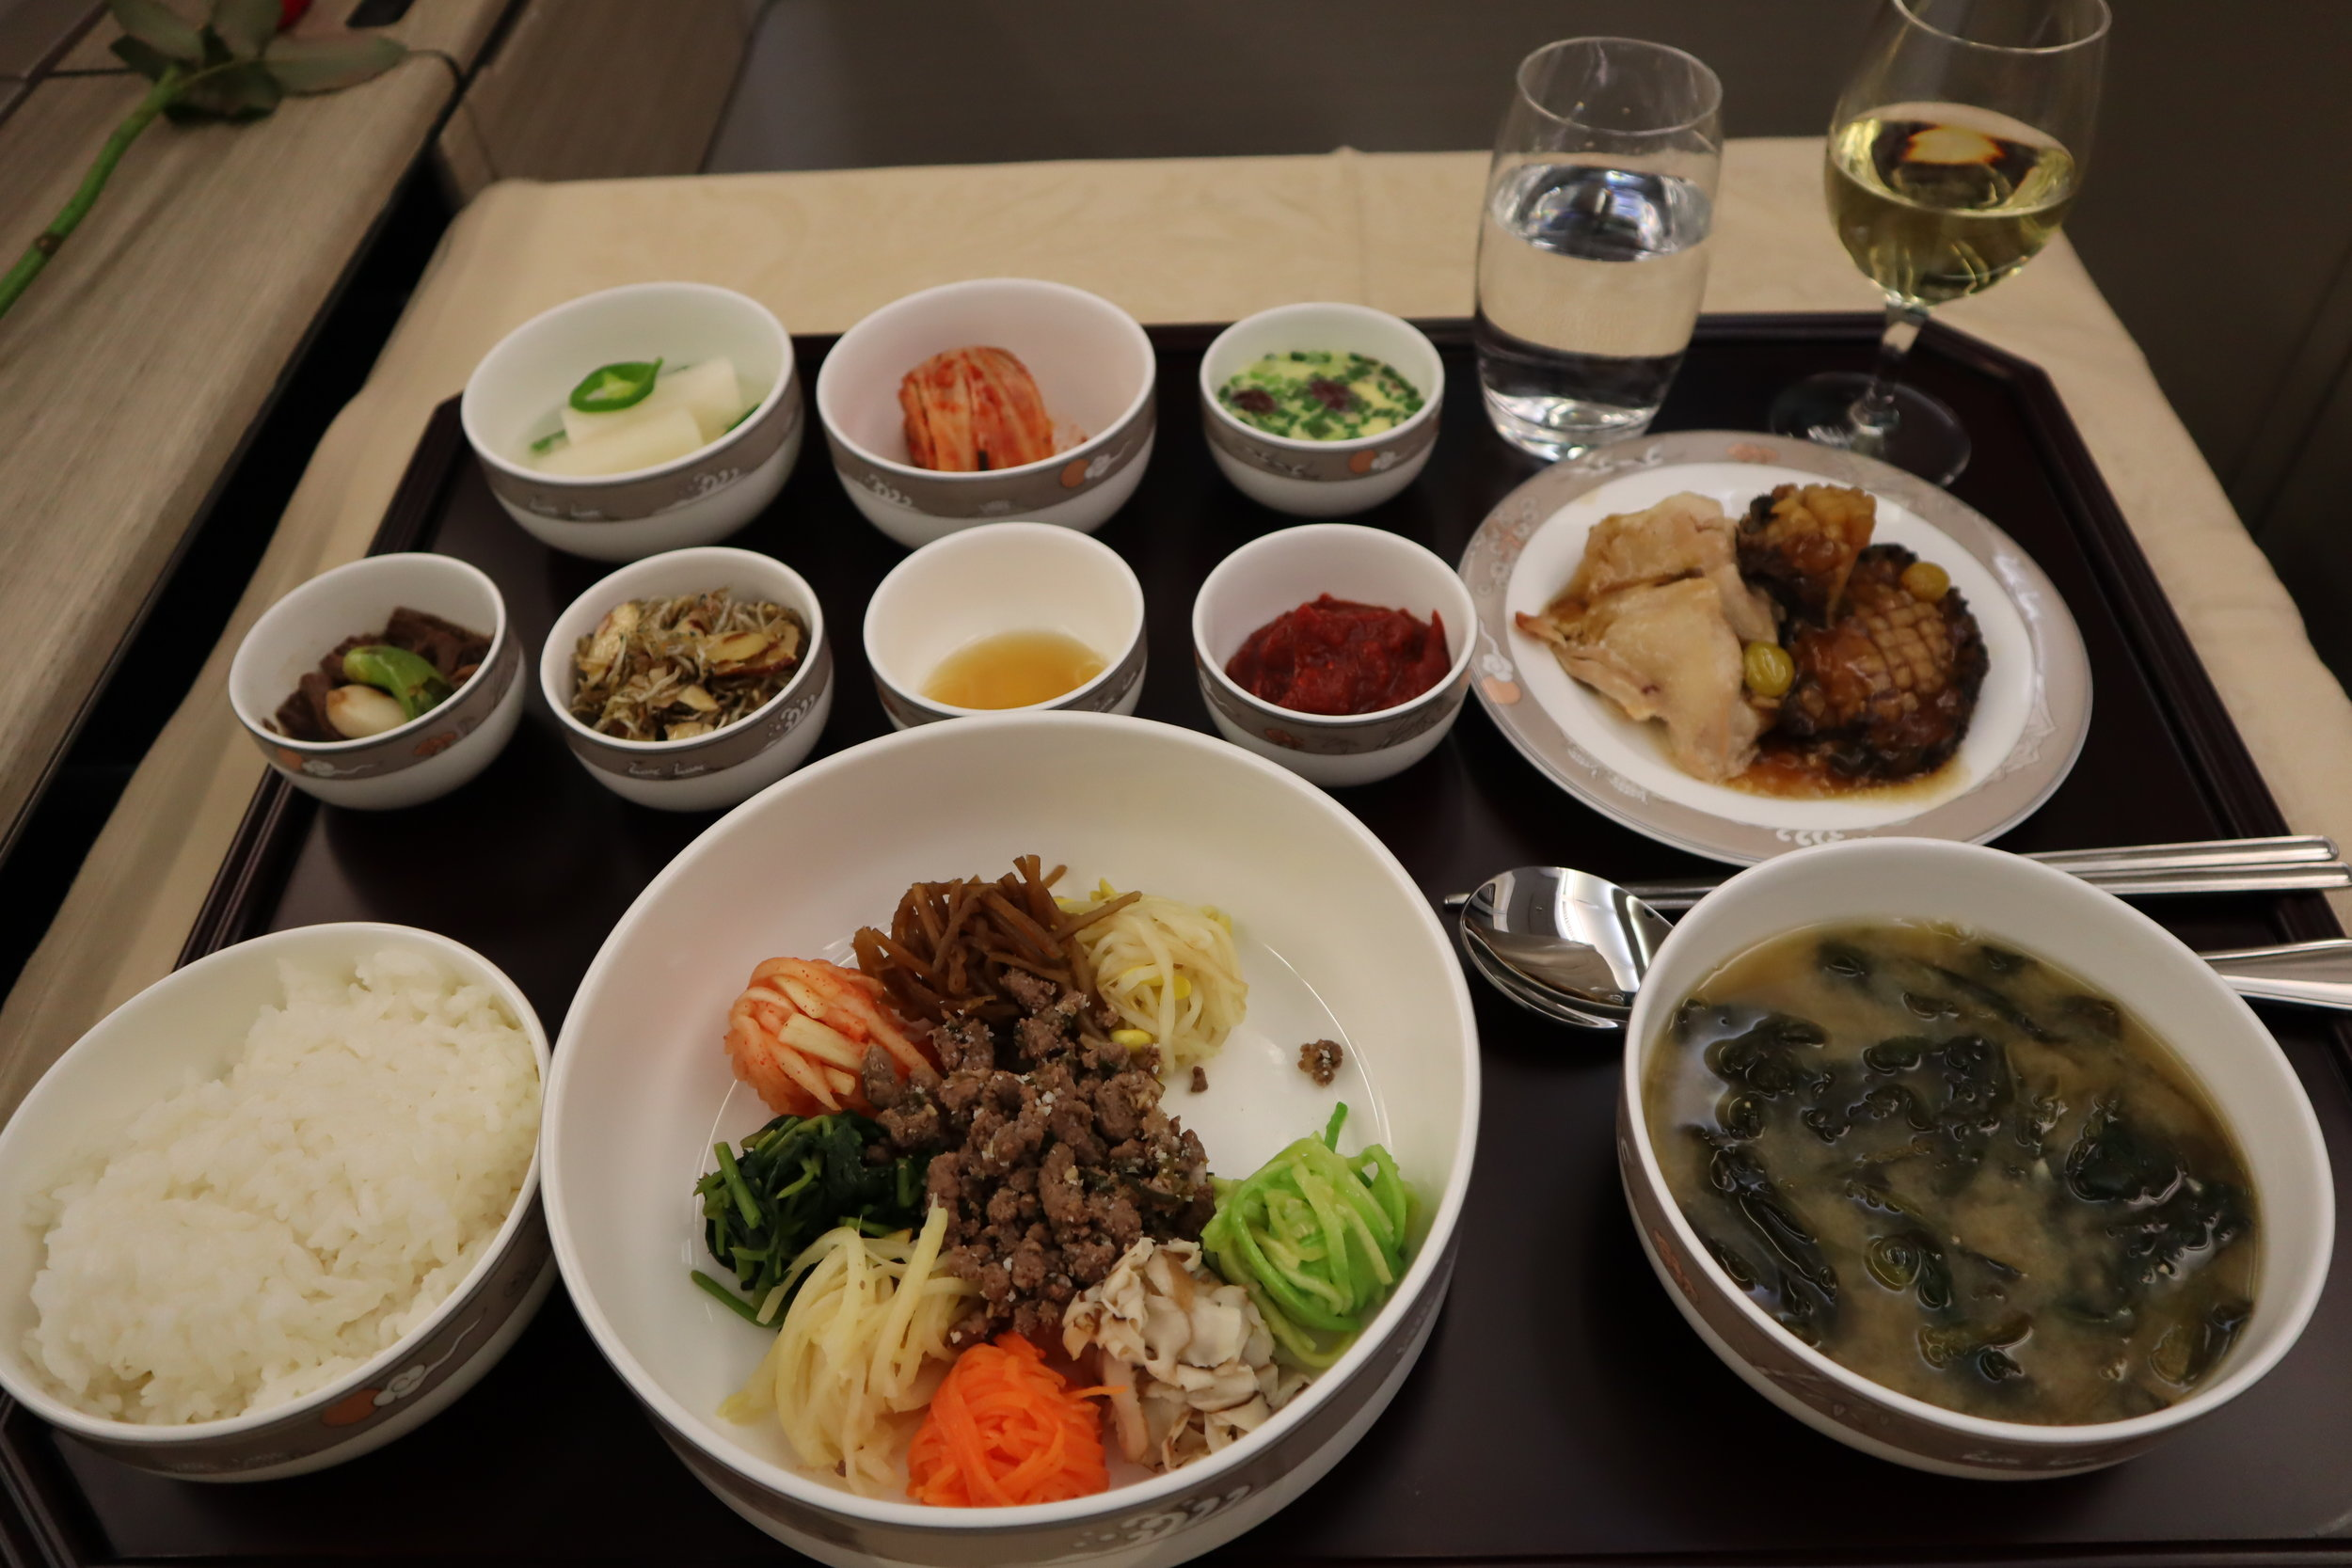 Asiana Airlines First Class – Bibimbap presentation